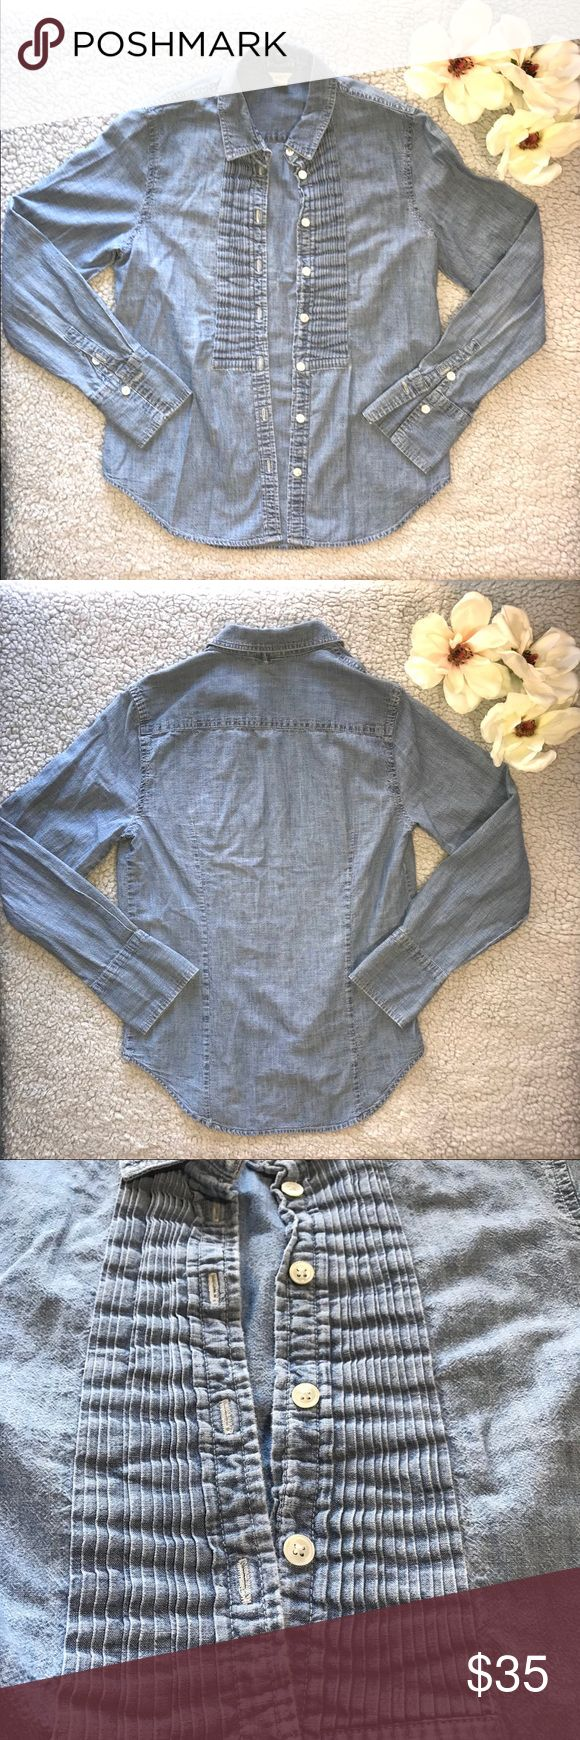 J. Crew Denim Button Down Tuxedo Front Size 2 J. Crew  Denim Button Down, Tuxedo Front  Size 2 Gently loved, still a lot of life left in this button down staple.  Excellent quality, 100% Cotton Perfect piece to grab and pair with almost anything❤️  OPEN TO ALL OFFERS 💕 Bundle your likes to receive a private offer! J. Crew Tops Button Down Shirts